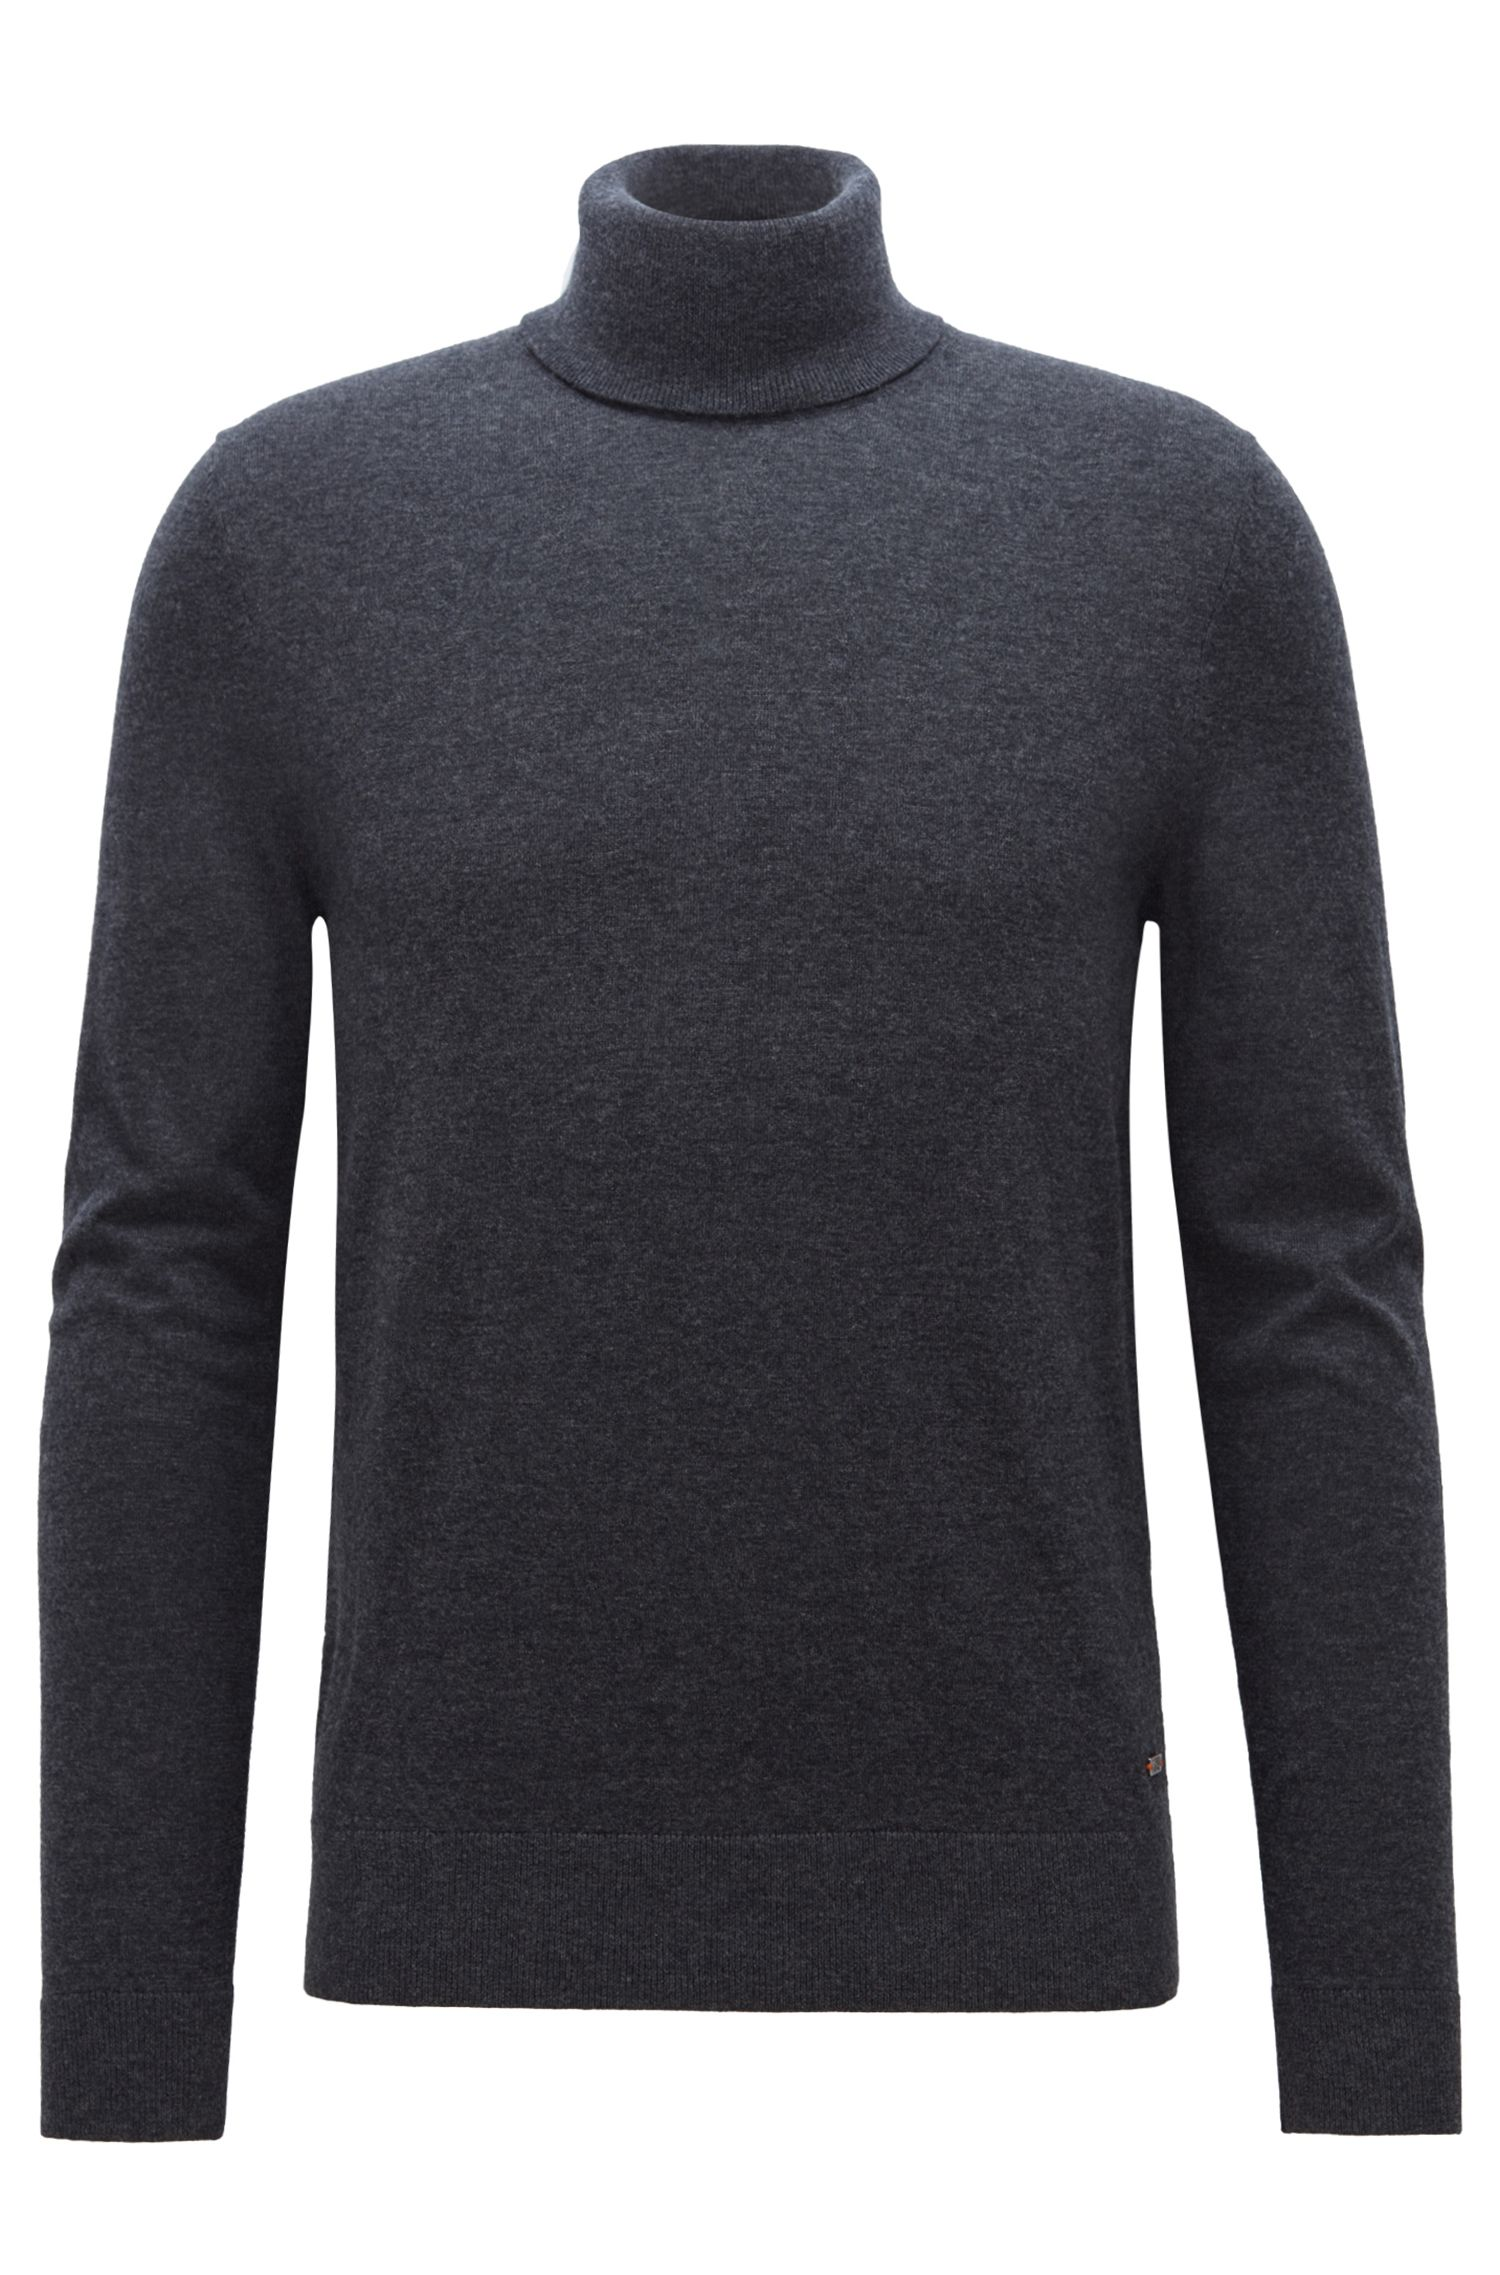 Slim-fit turtleneck sweater in a fine-knit cotton blend, Dark Grey